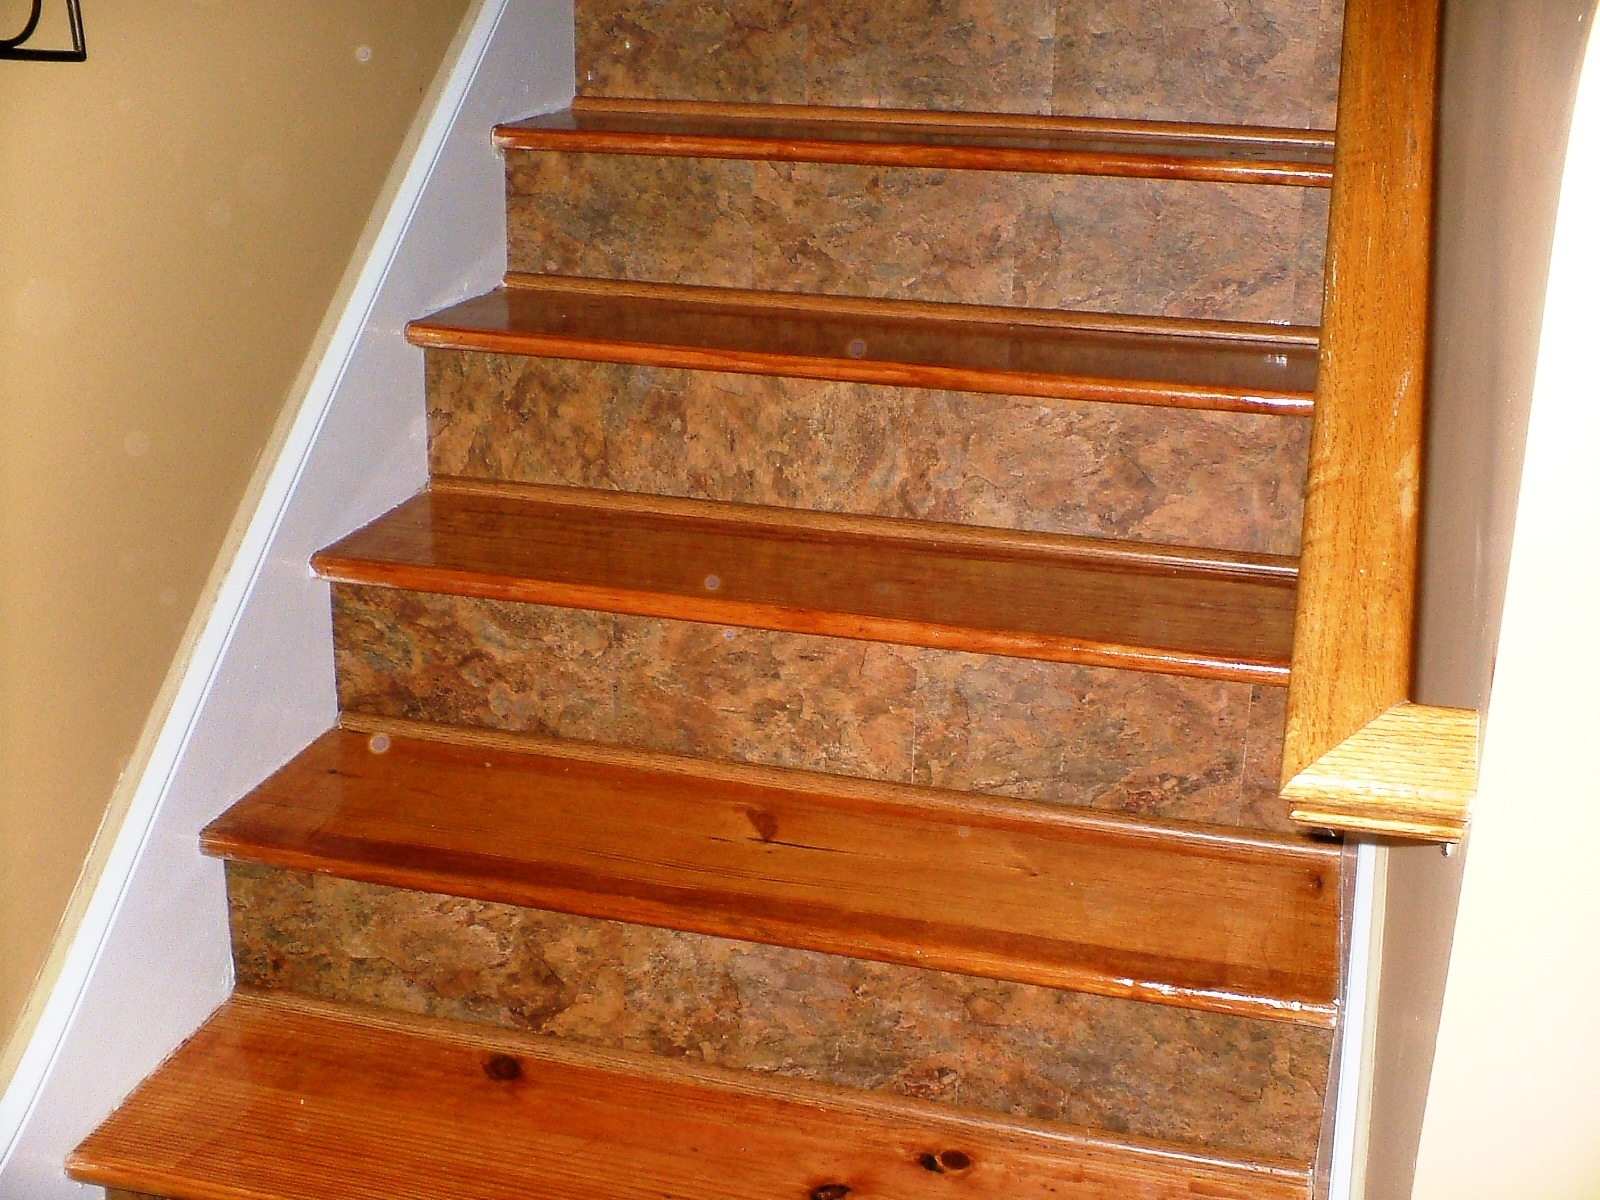 Decor Carpet Treads For Wooden Stairs Stair Treads Carpet With Regard To Stair Protectors Wooden Stairs (Image 3 of 15)